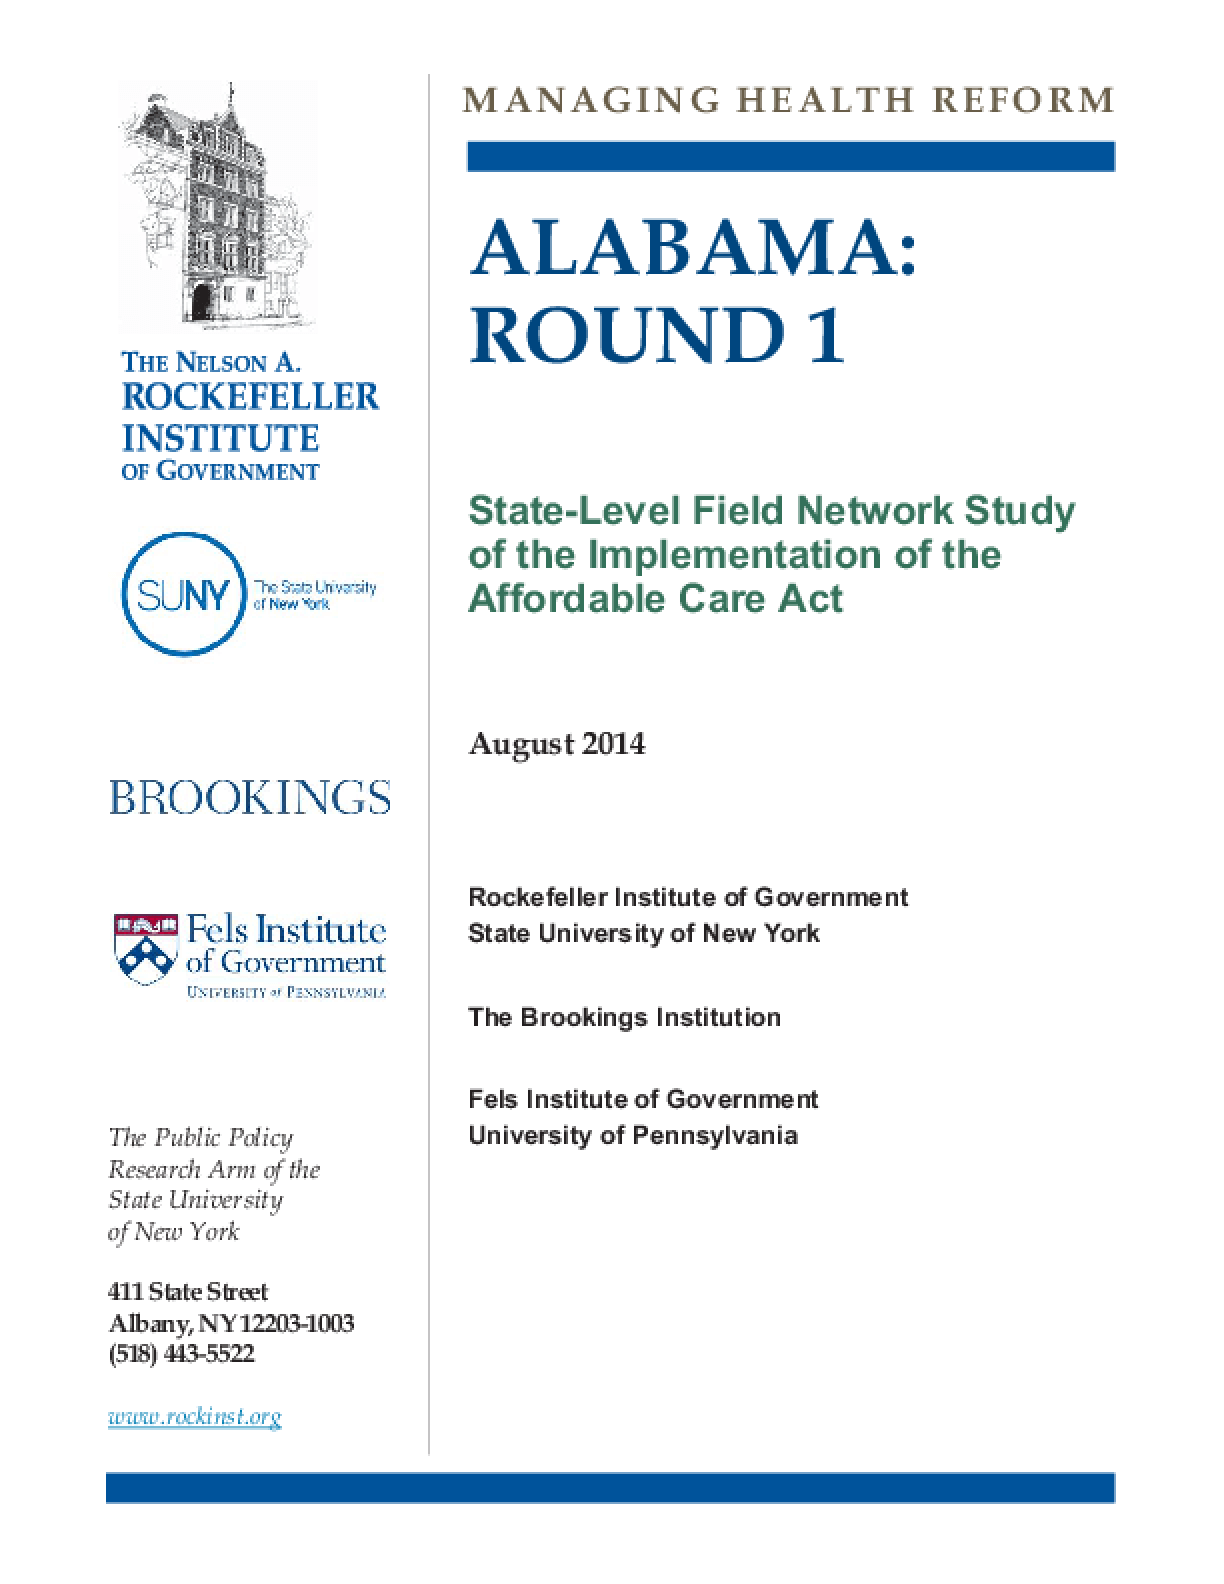 Alabama: Round 1 - State-Level Field Network Study of the Implementation of the Affordable Care Act